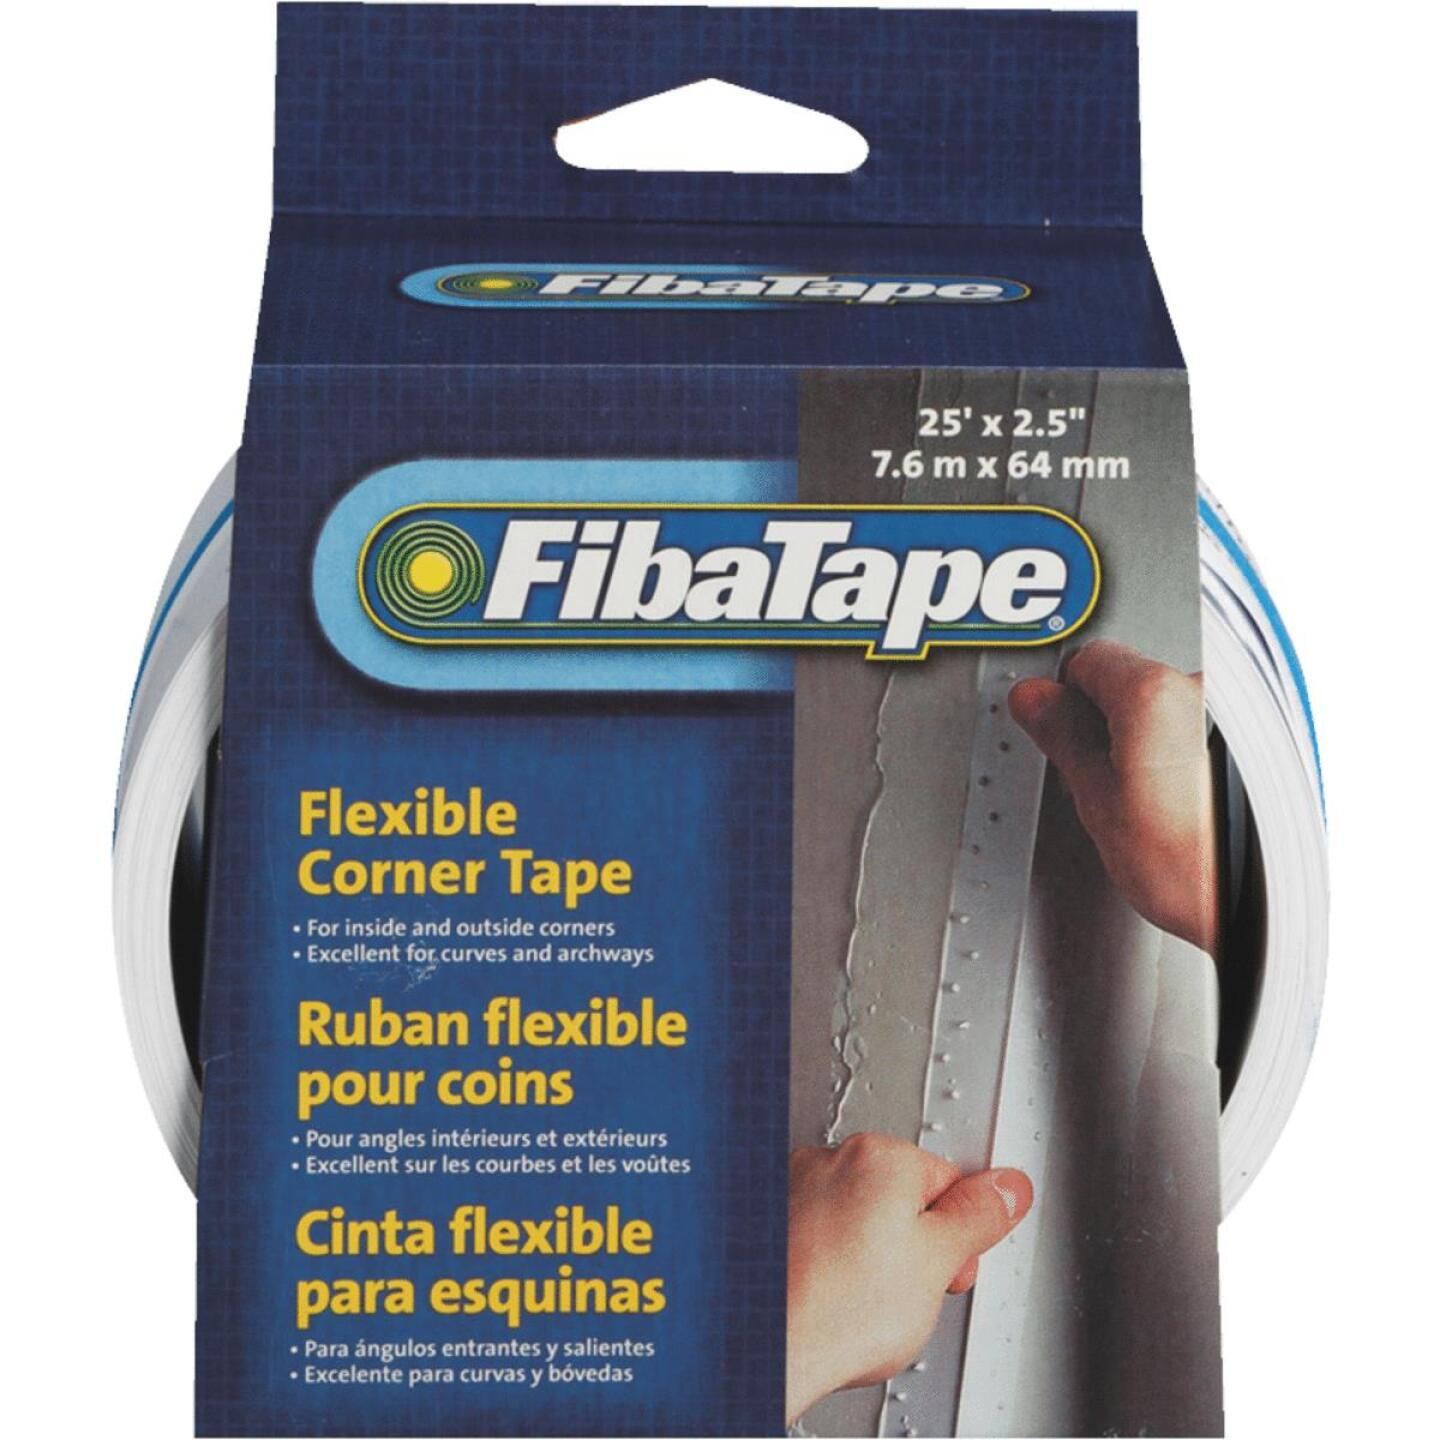 FibaTape Flexible Corner 2-1/2 In. X 25 Ft. Drywall Tape Image 1